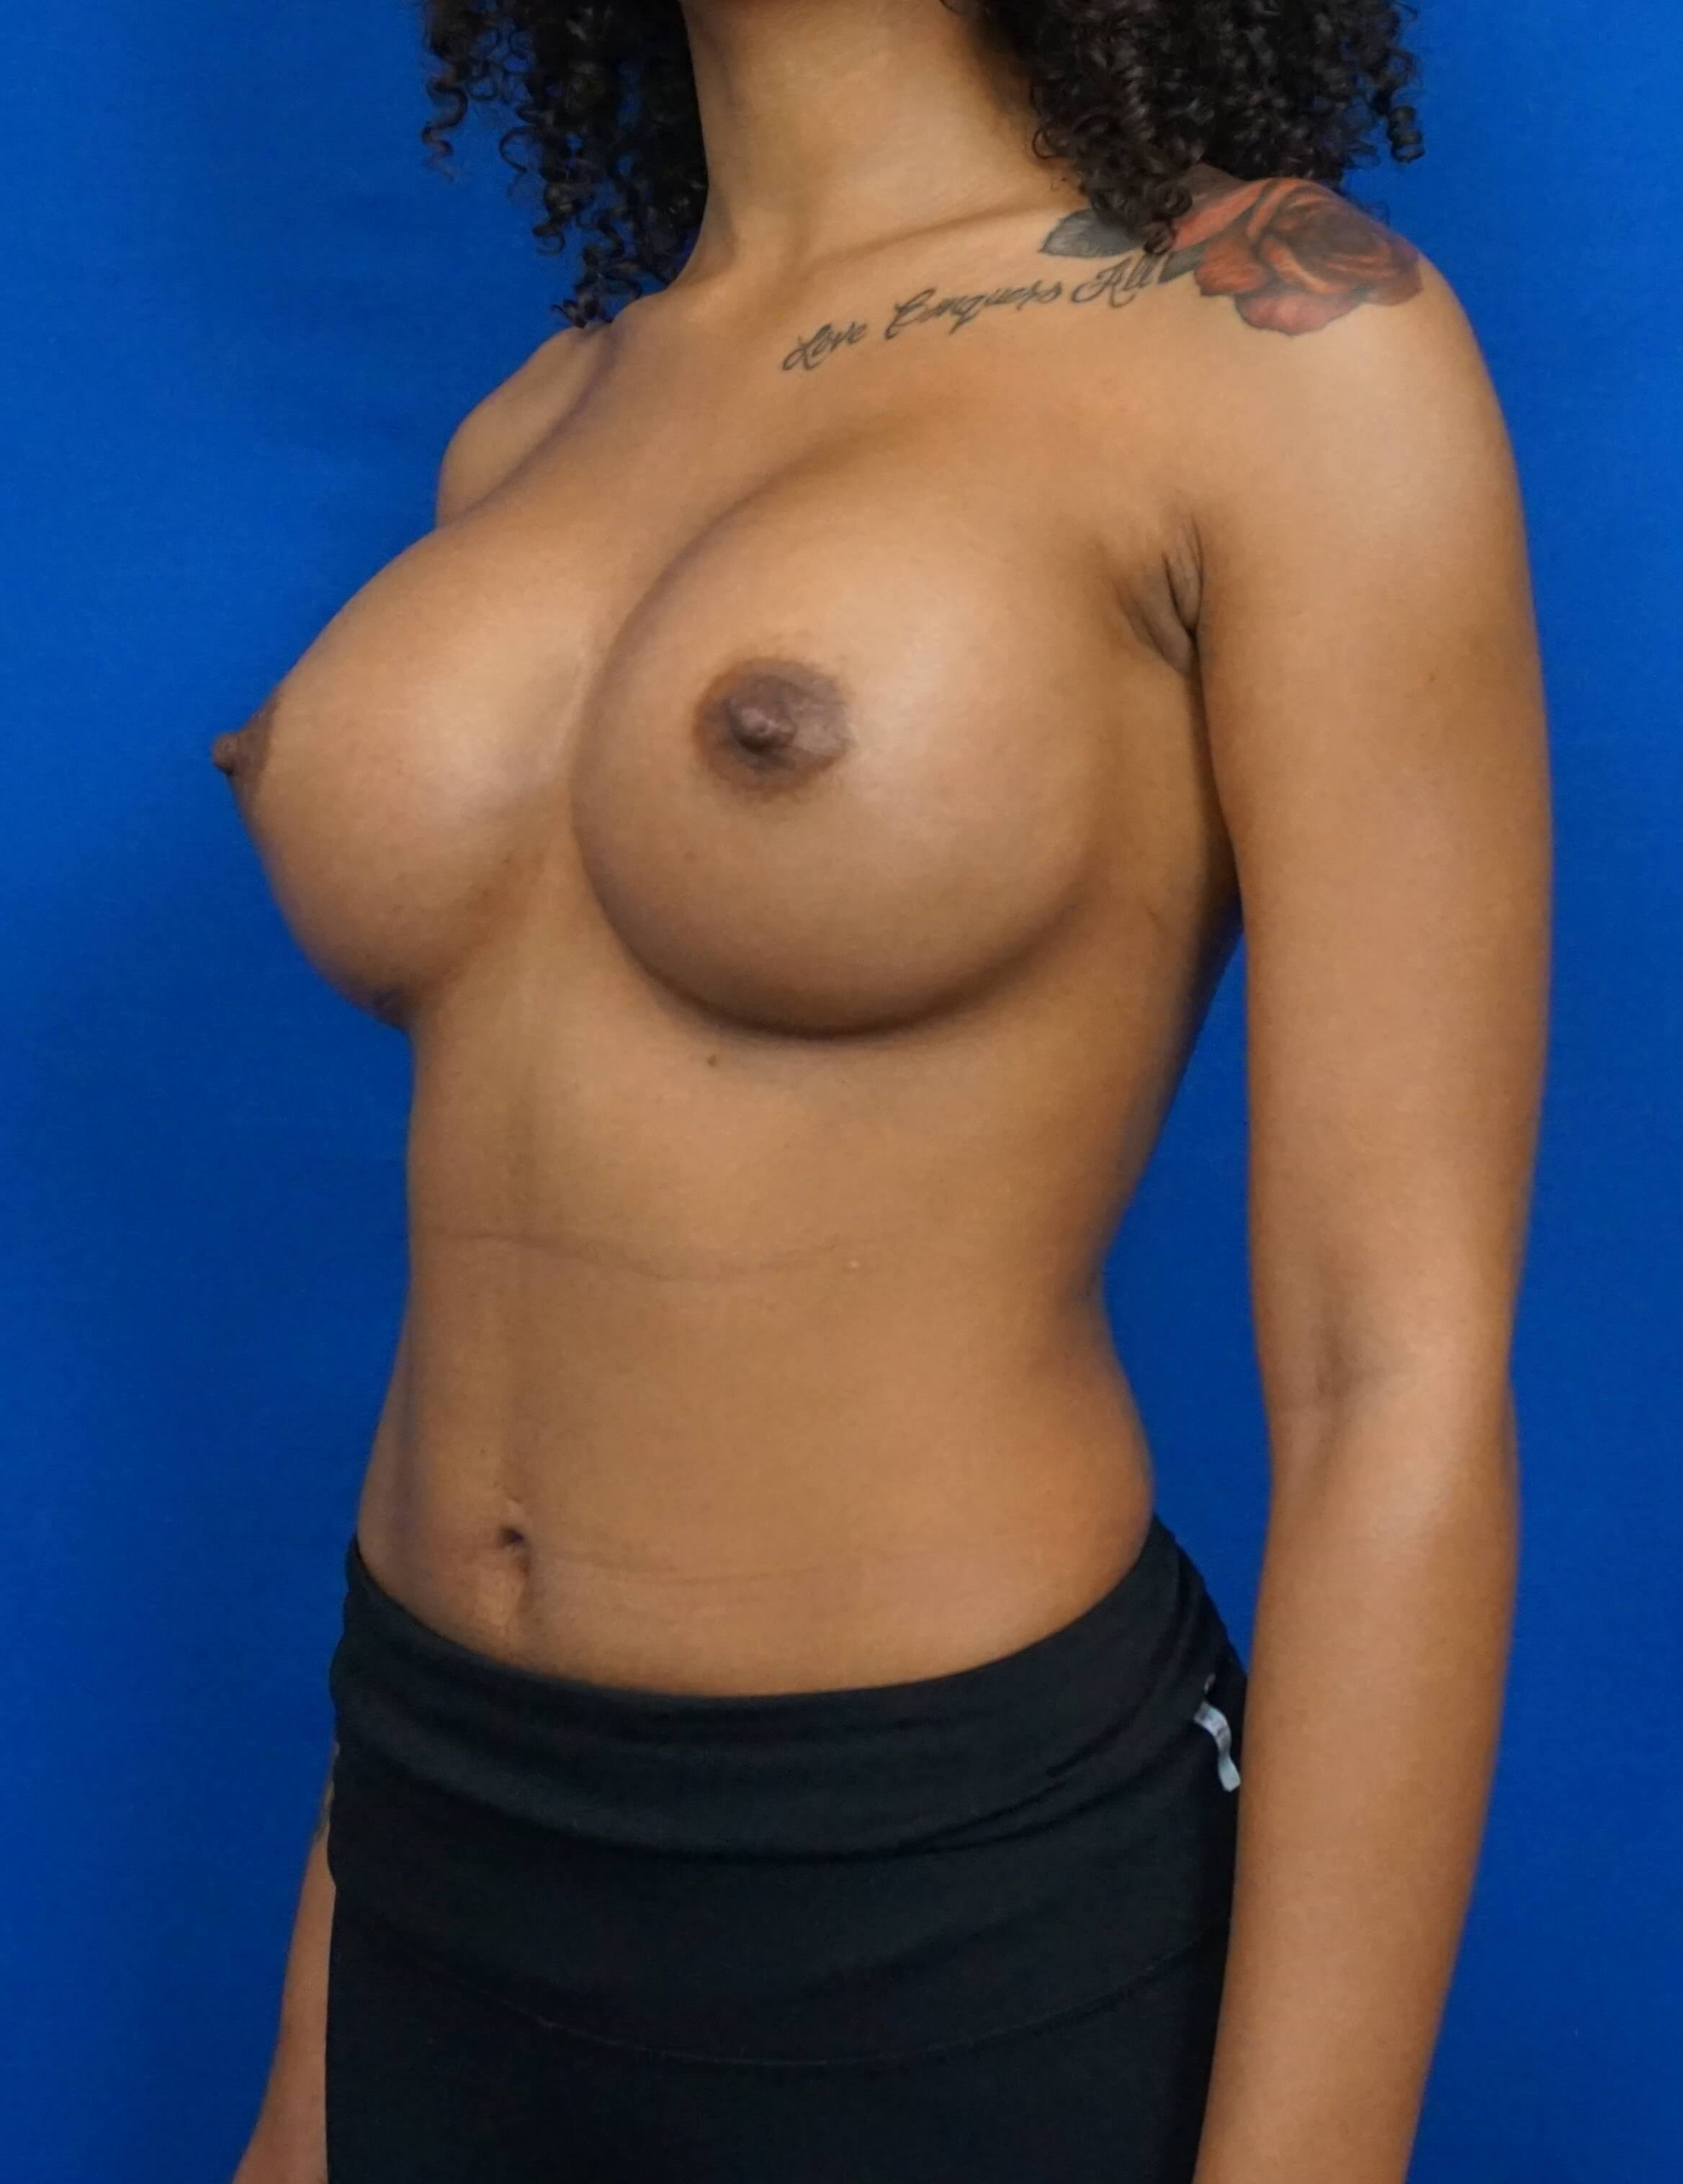 Breast Augmentation Las Vegas After Vegas Breast Implant